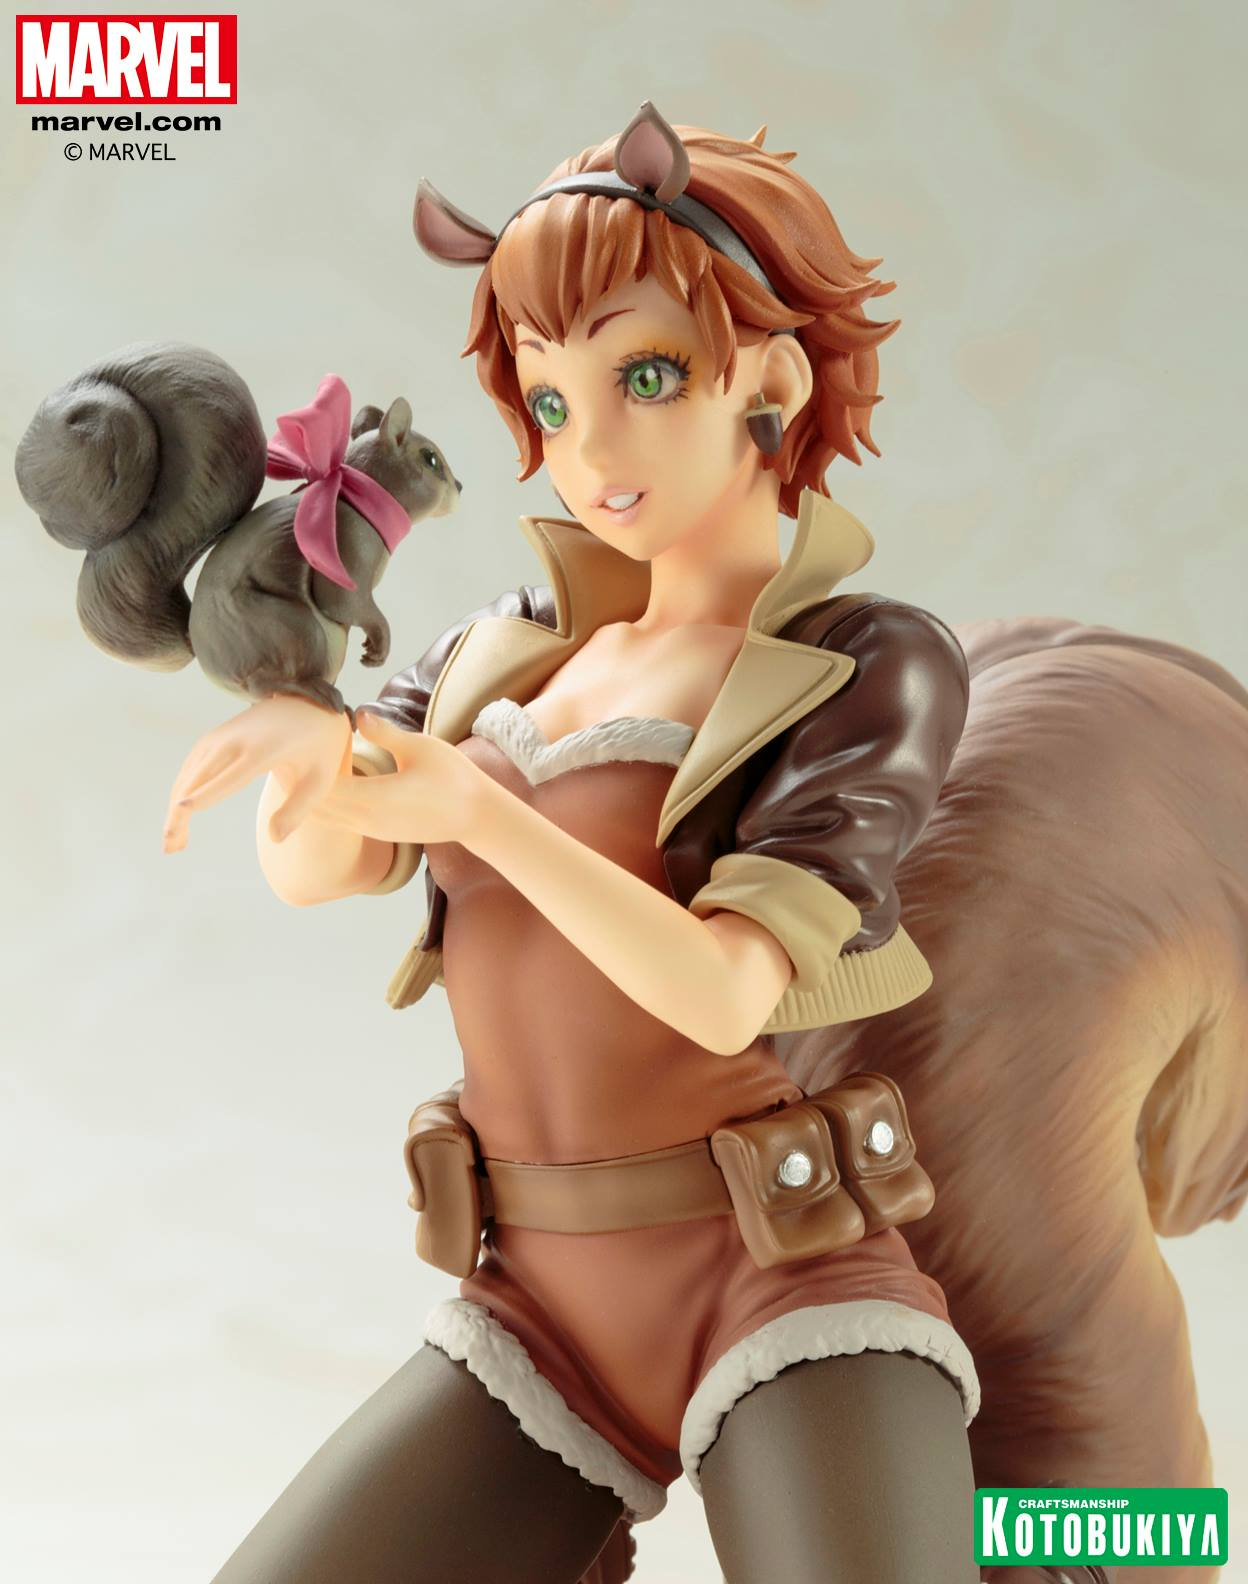 squirrel-girl-bishoujo-statue-marvel-kotobukiya-6